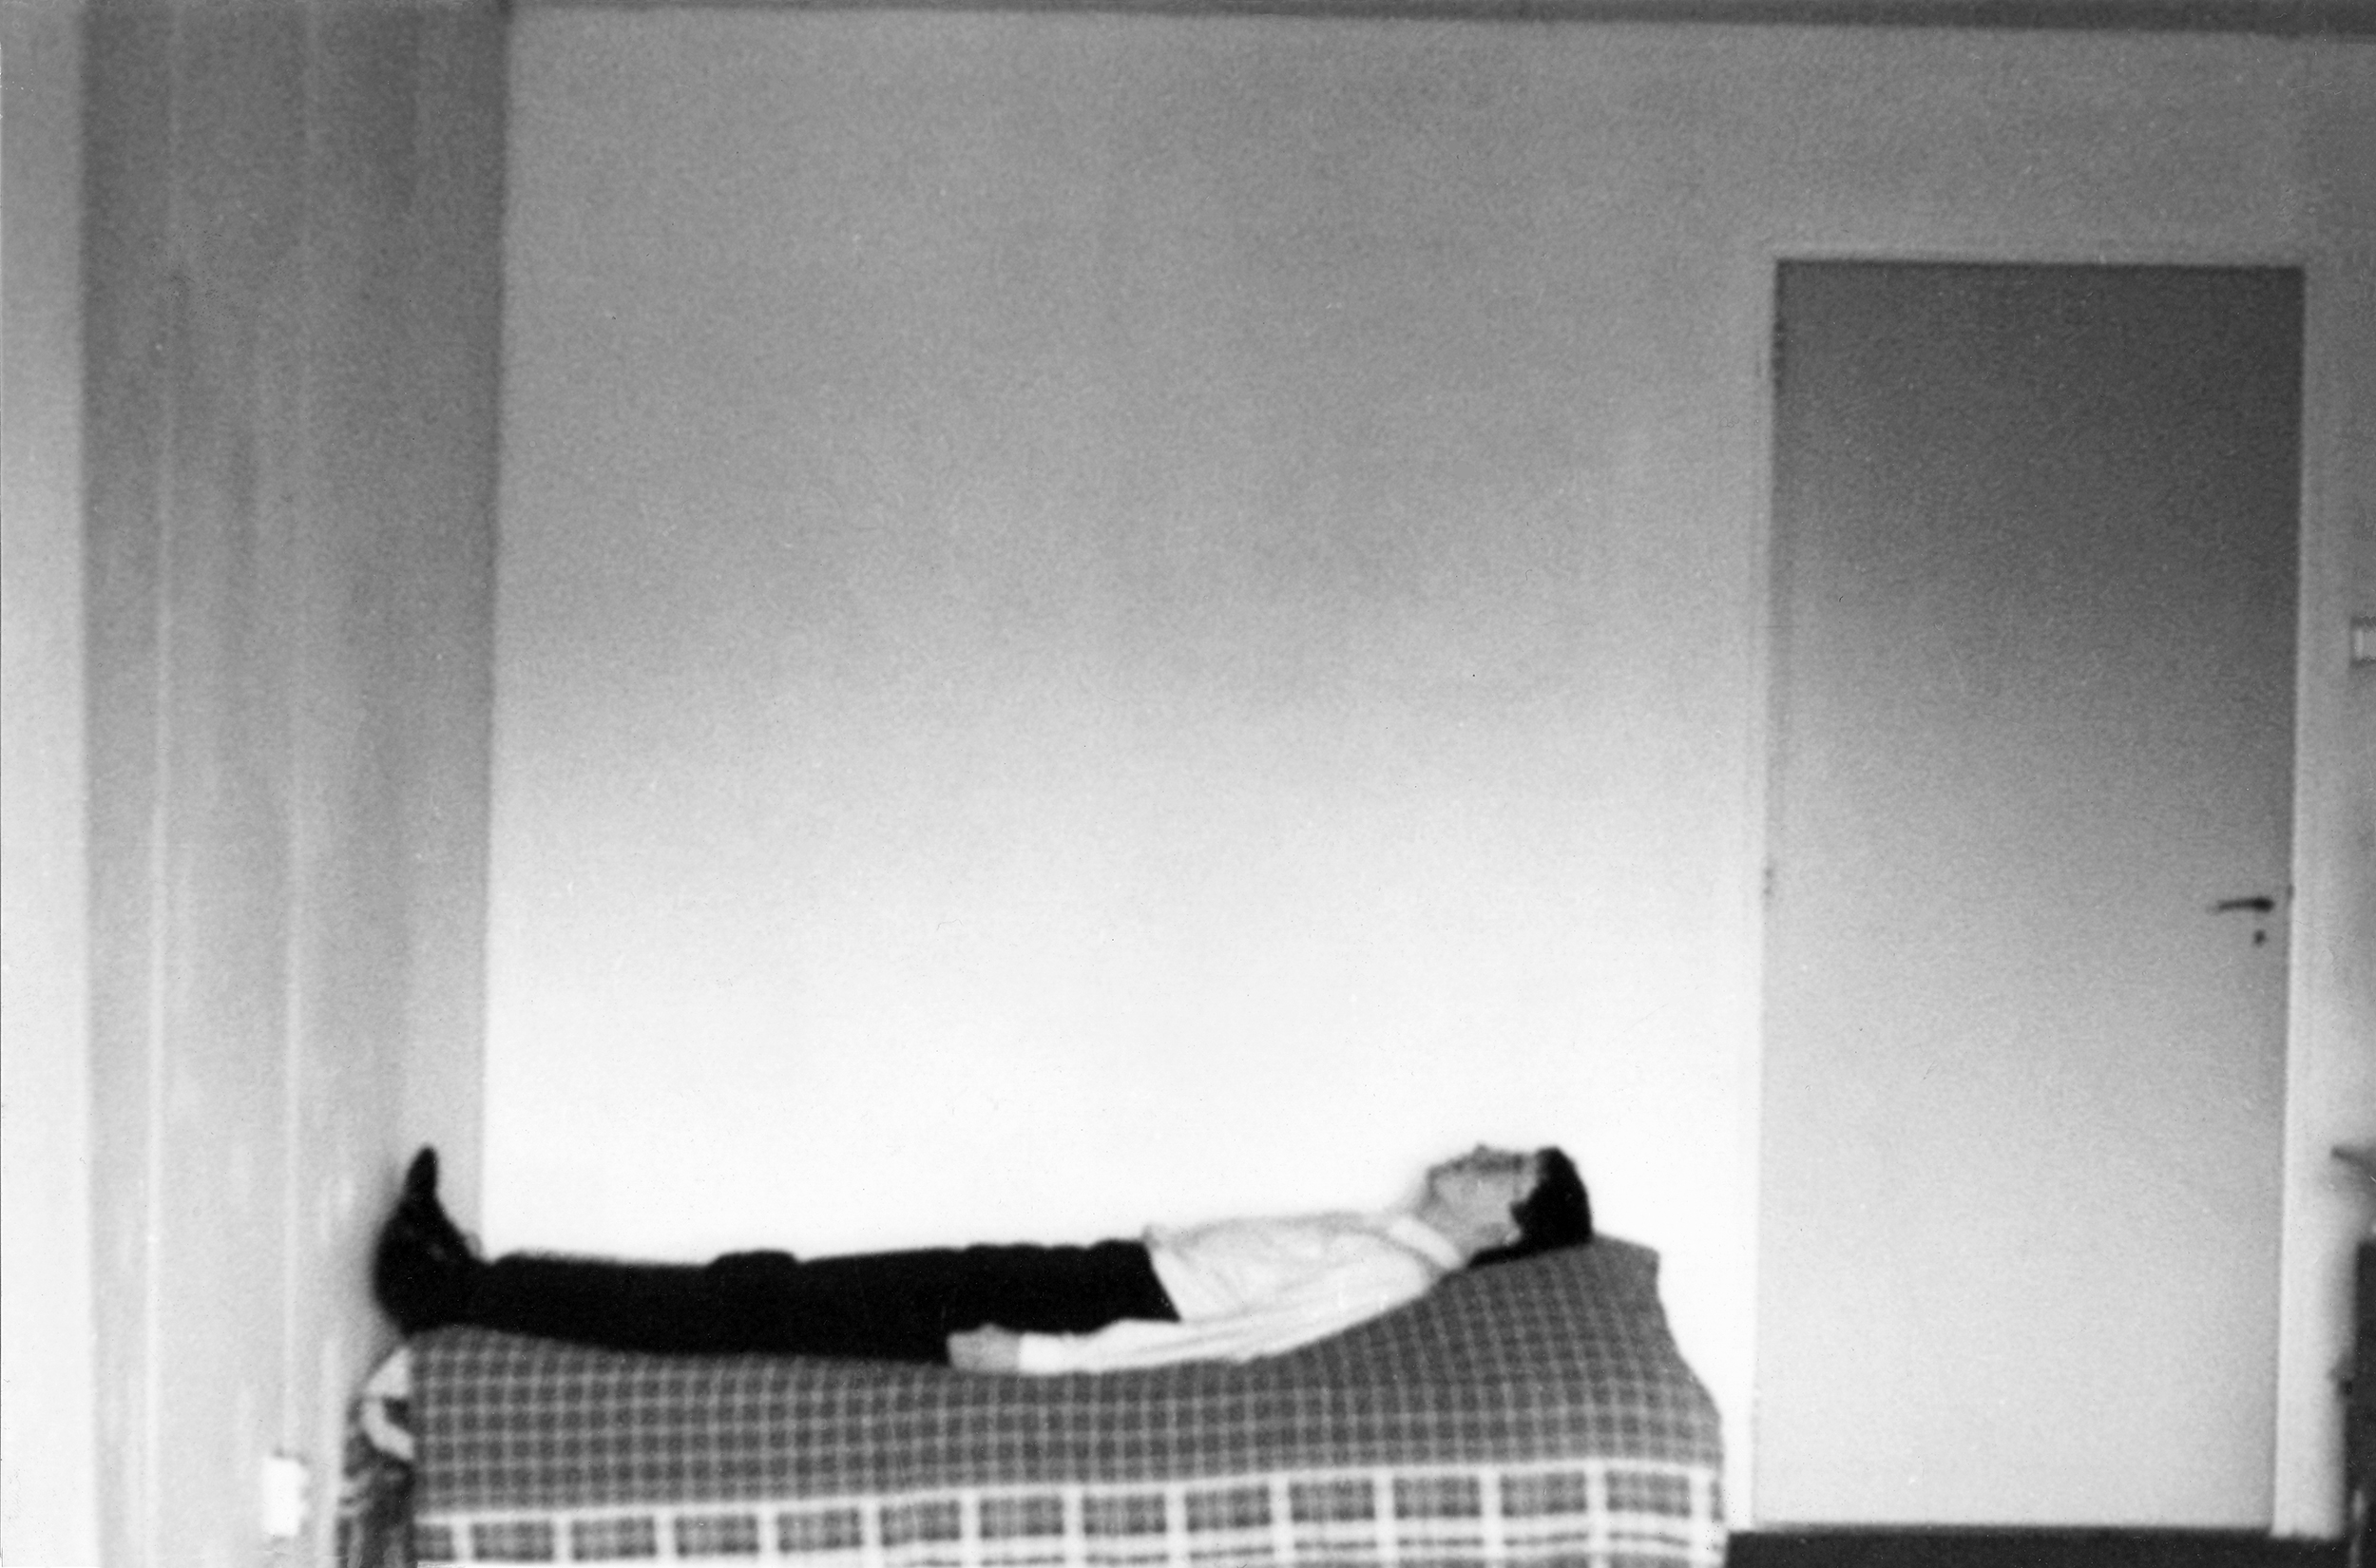 Self-portrait on Bed, photograph by Wouter van Riessen